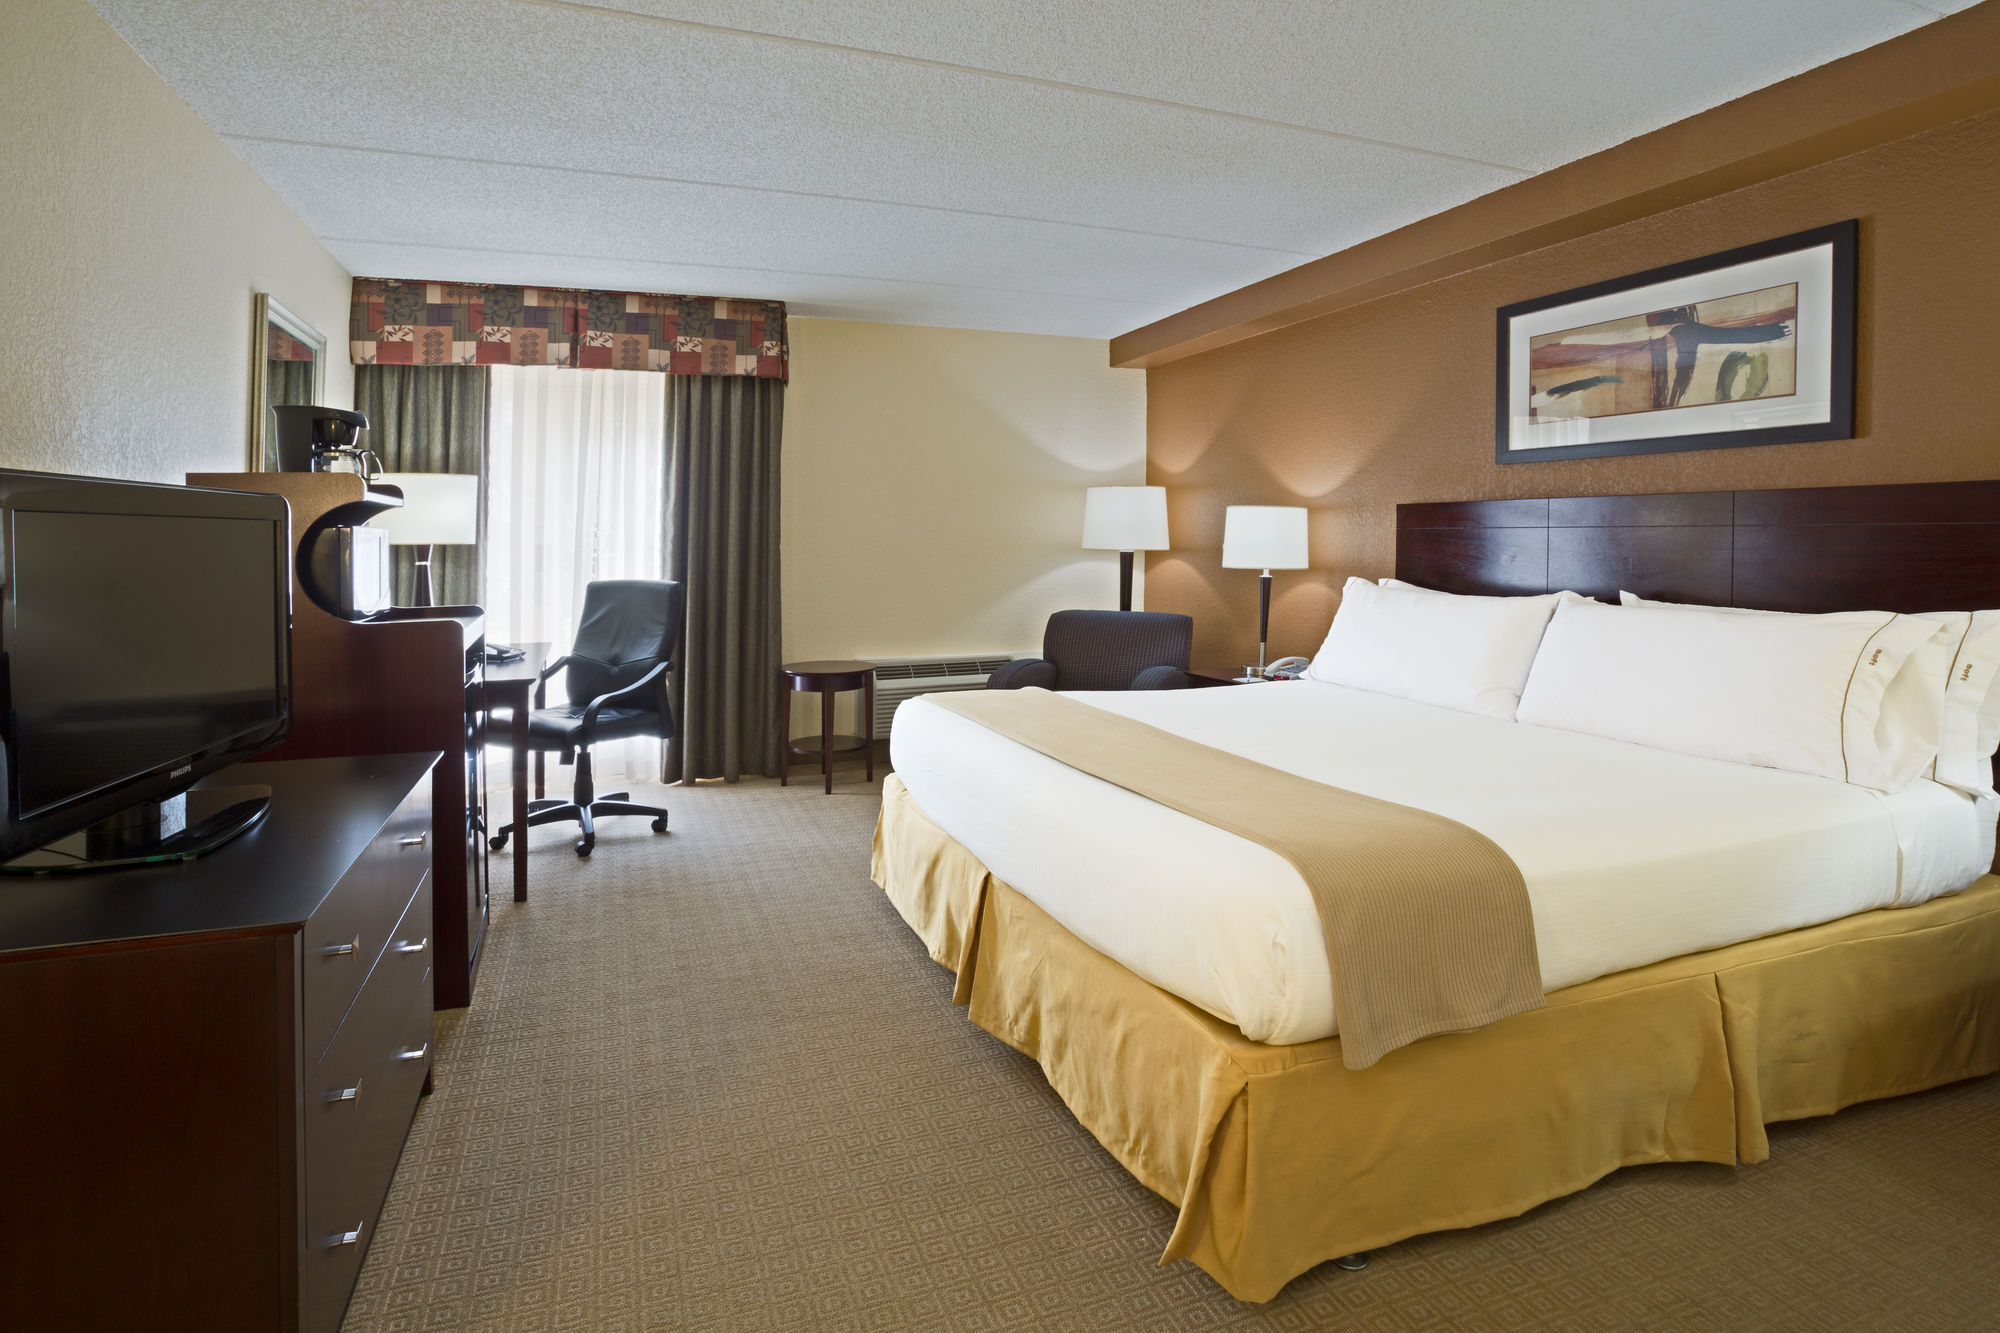 Holiday Inn Express & Suites Ft. Lauderdale N - Exec Airport in Oakland Park, FL